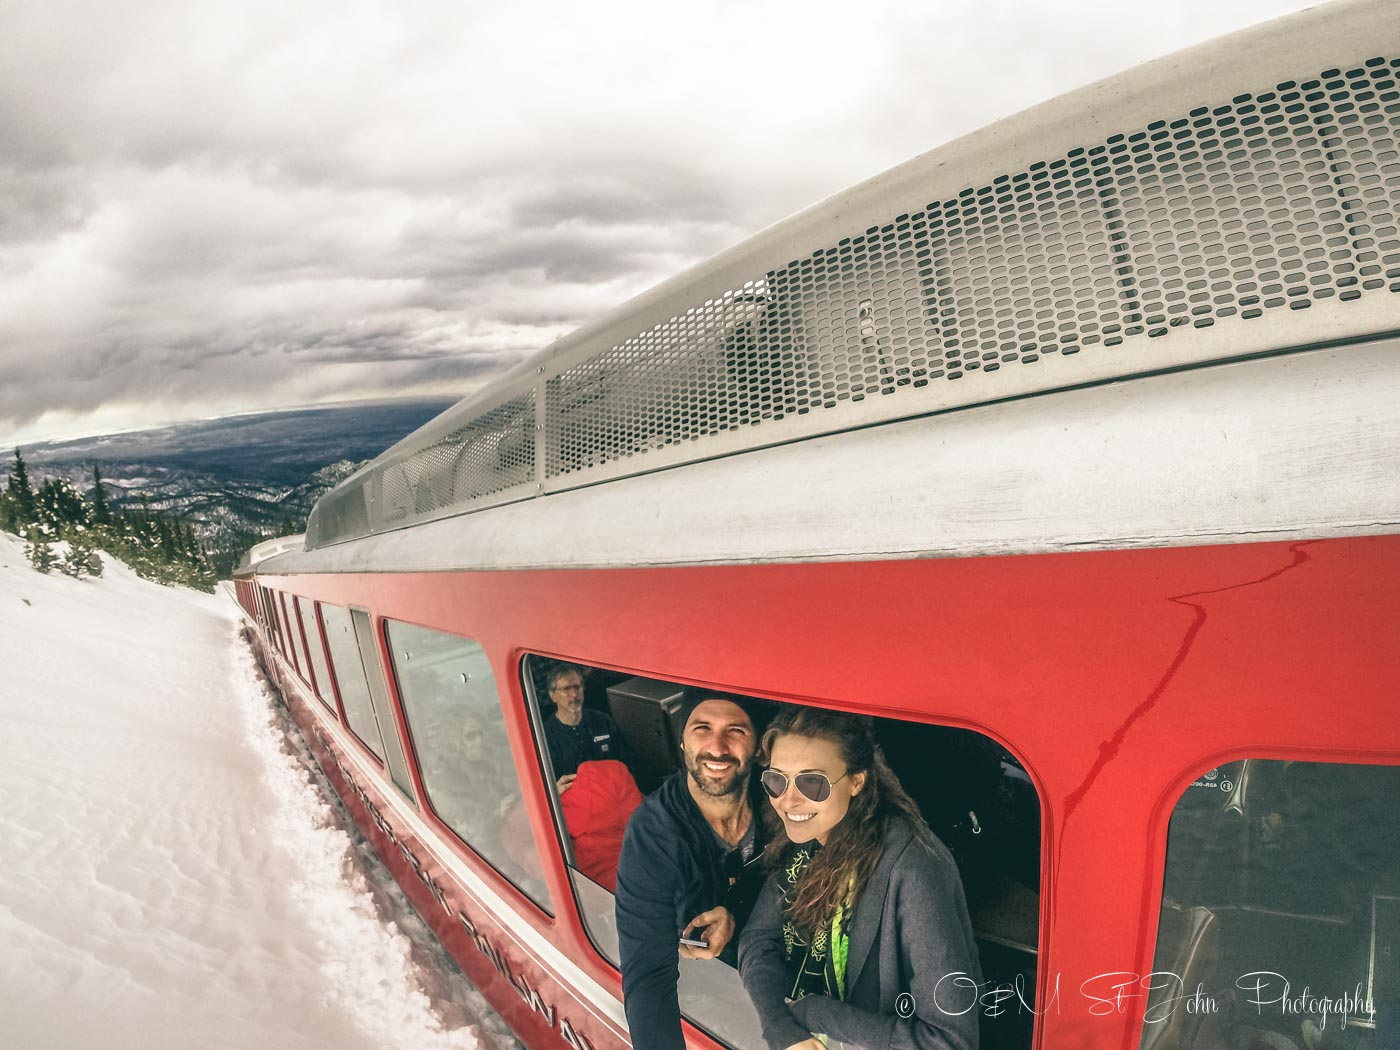 Road trip USA: Max & Oksana peaking out of Cog Railway en route to the top of Pikes Peak. Rocky Mountains. Colorado. USA Road trip